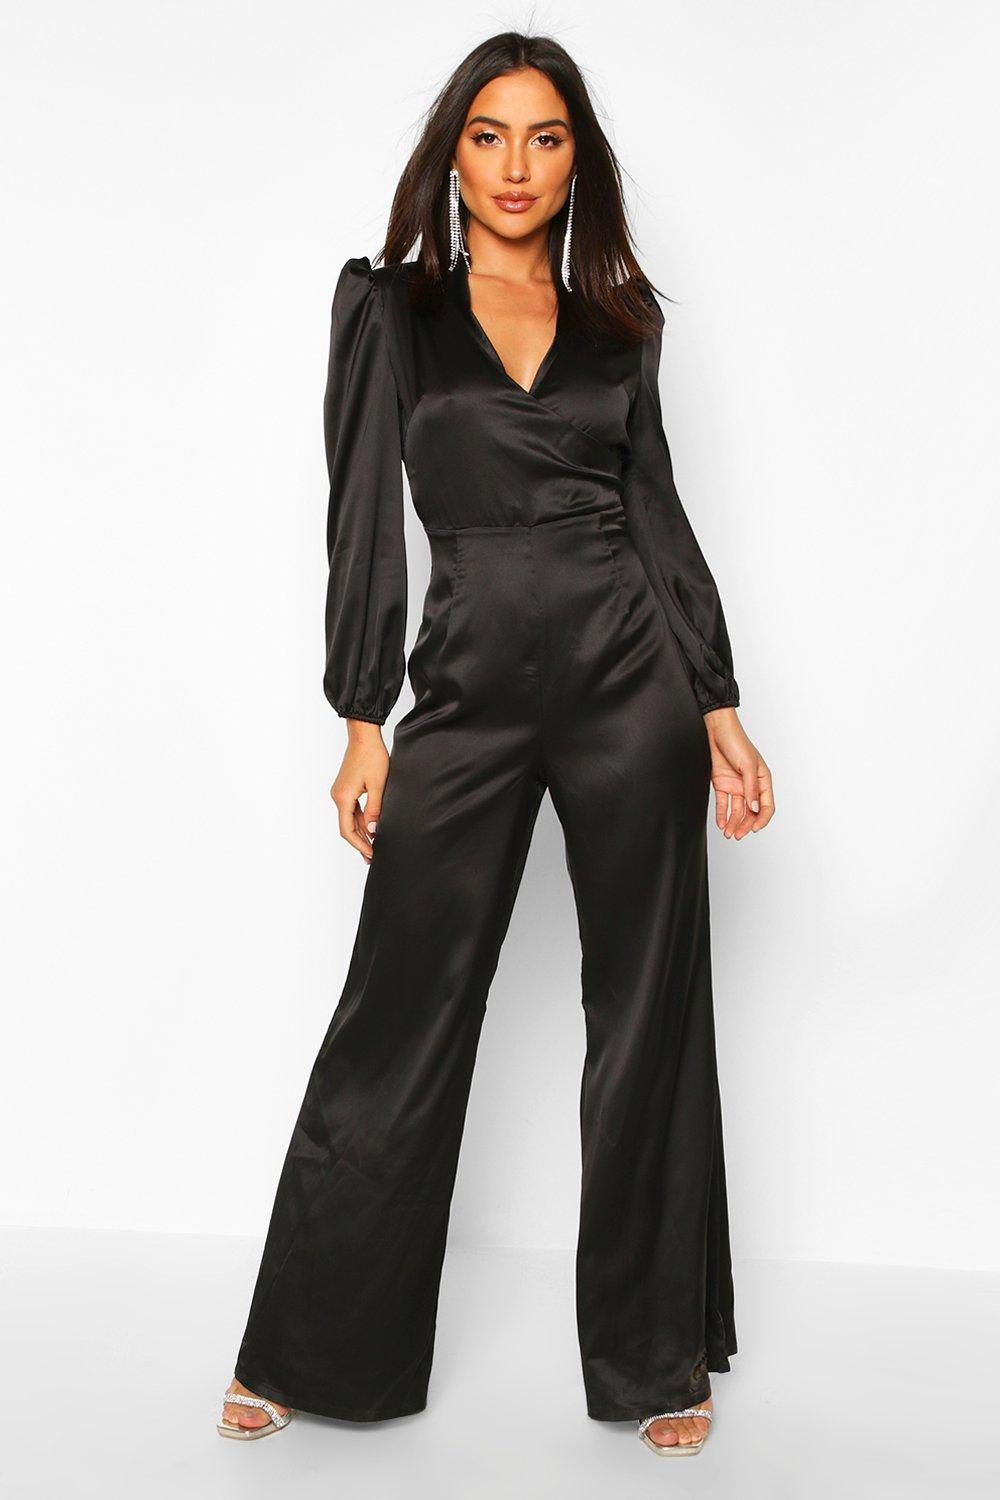 70s Jumpsuit | Disco Jumpsuits – Sequin, Striped, Gold, White, Black Womens Ruched Sleeve Wrap Over Wide Leg Jumpsuit - black - 12 $58.00 AT vintagedancer.com